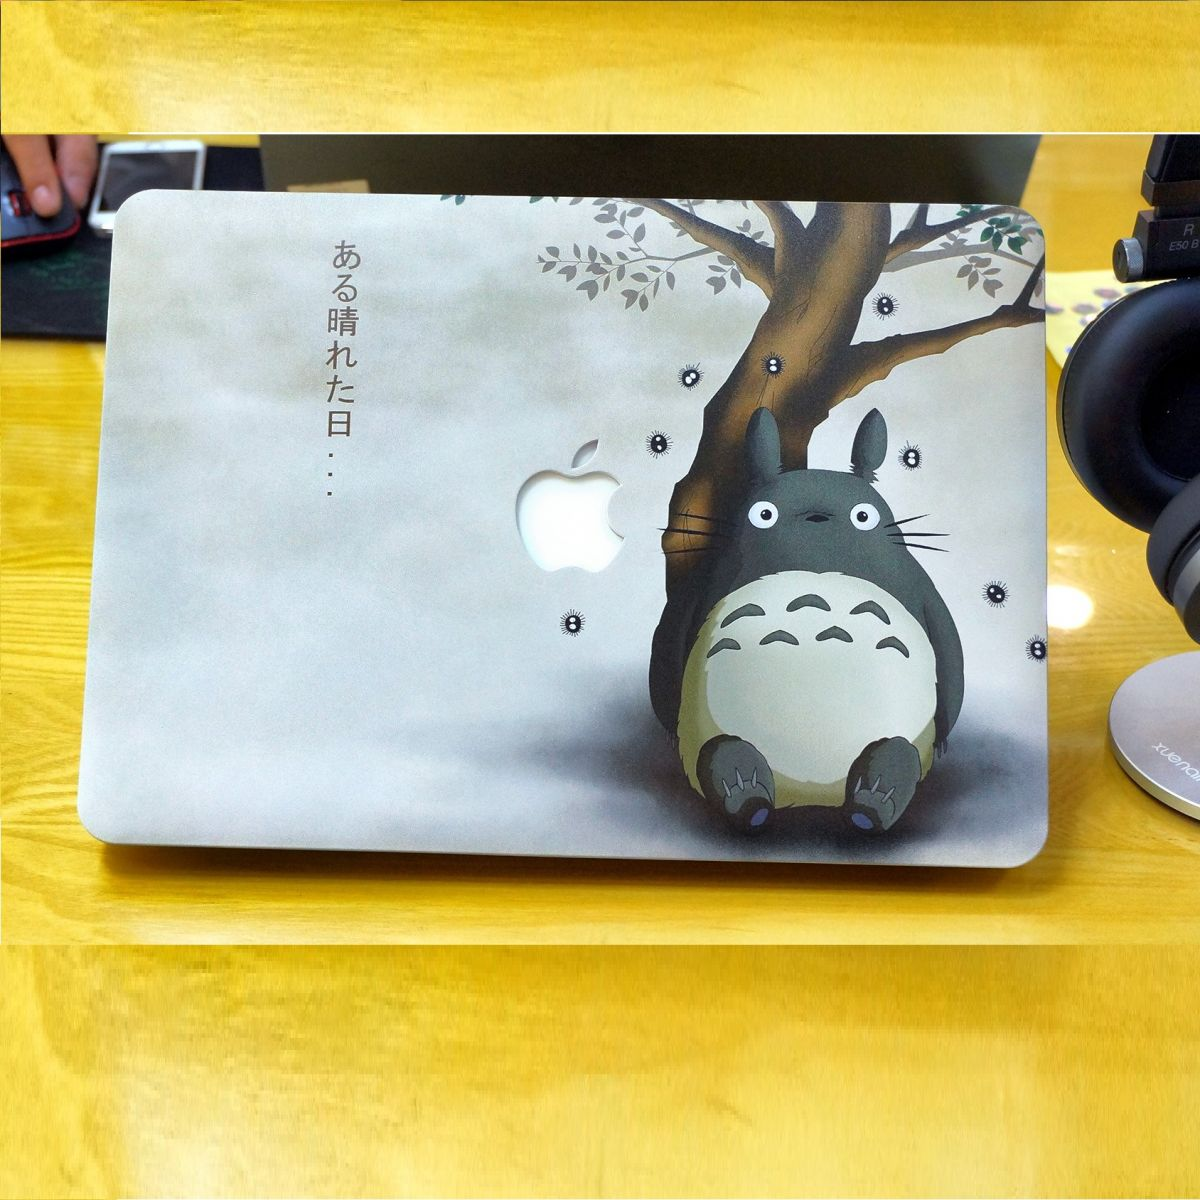 Ốp Macbook hình Totoro- C014 - Macbook Air 13